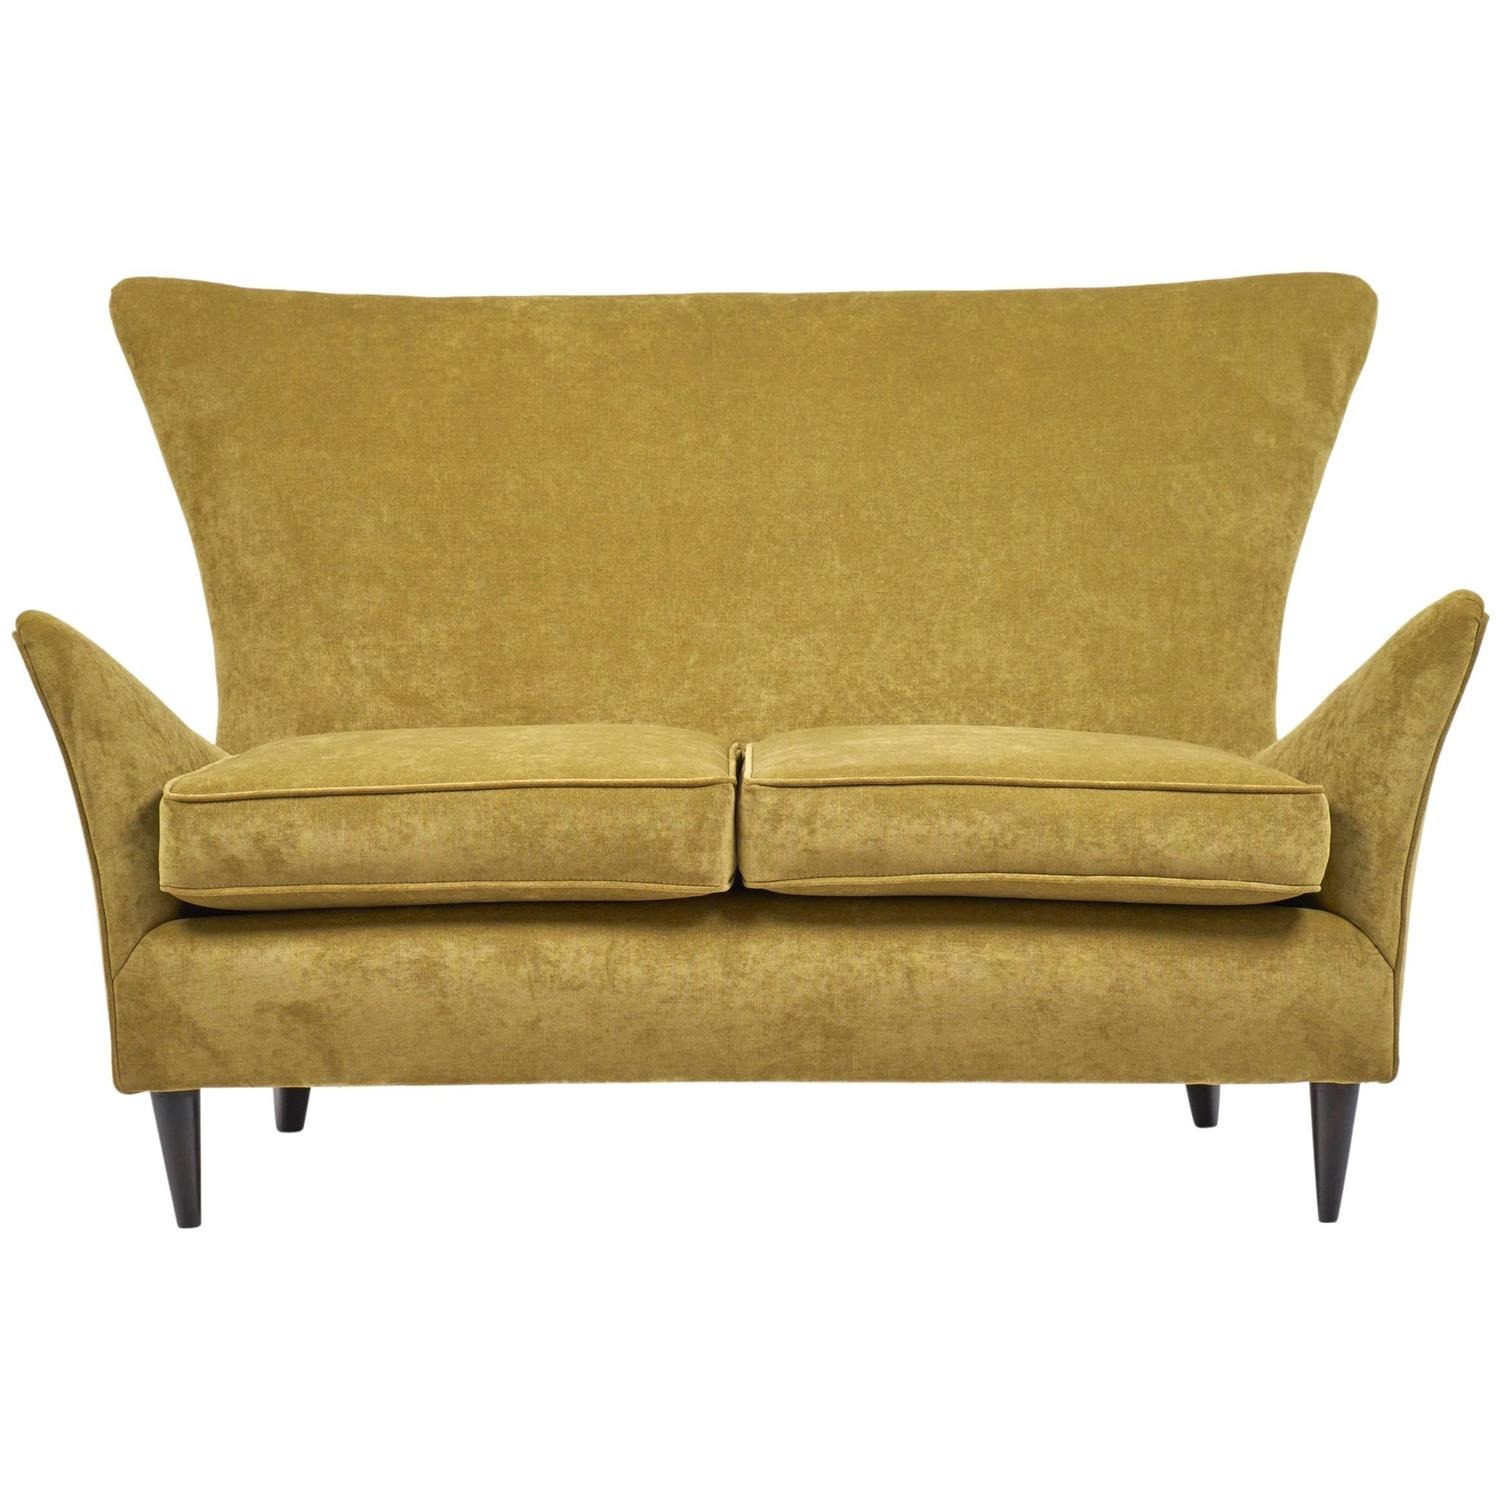 Pleasant Vintage Italian Sofa Attributed To Gio Ponti At 1Stdibs Machost Co Dining Chair Design Ideas Machostcouk